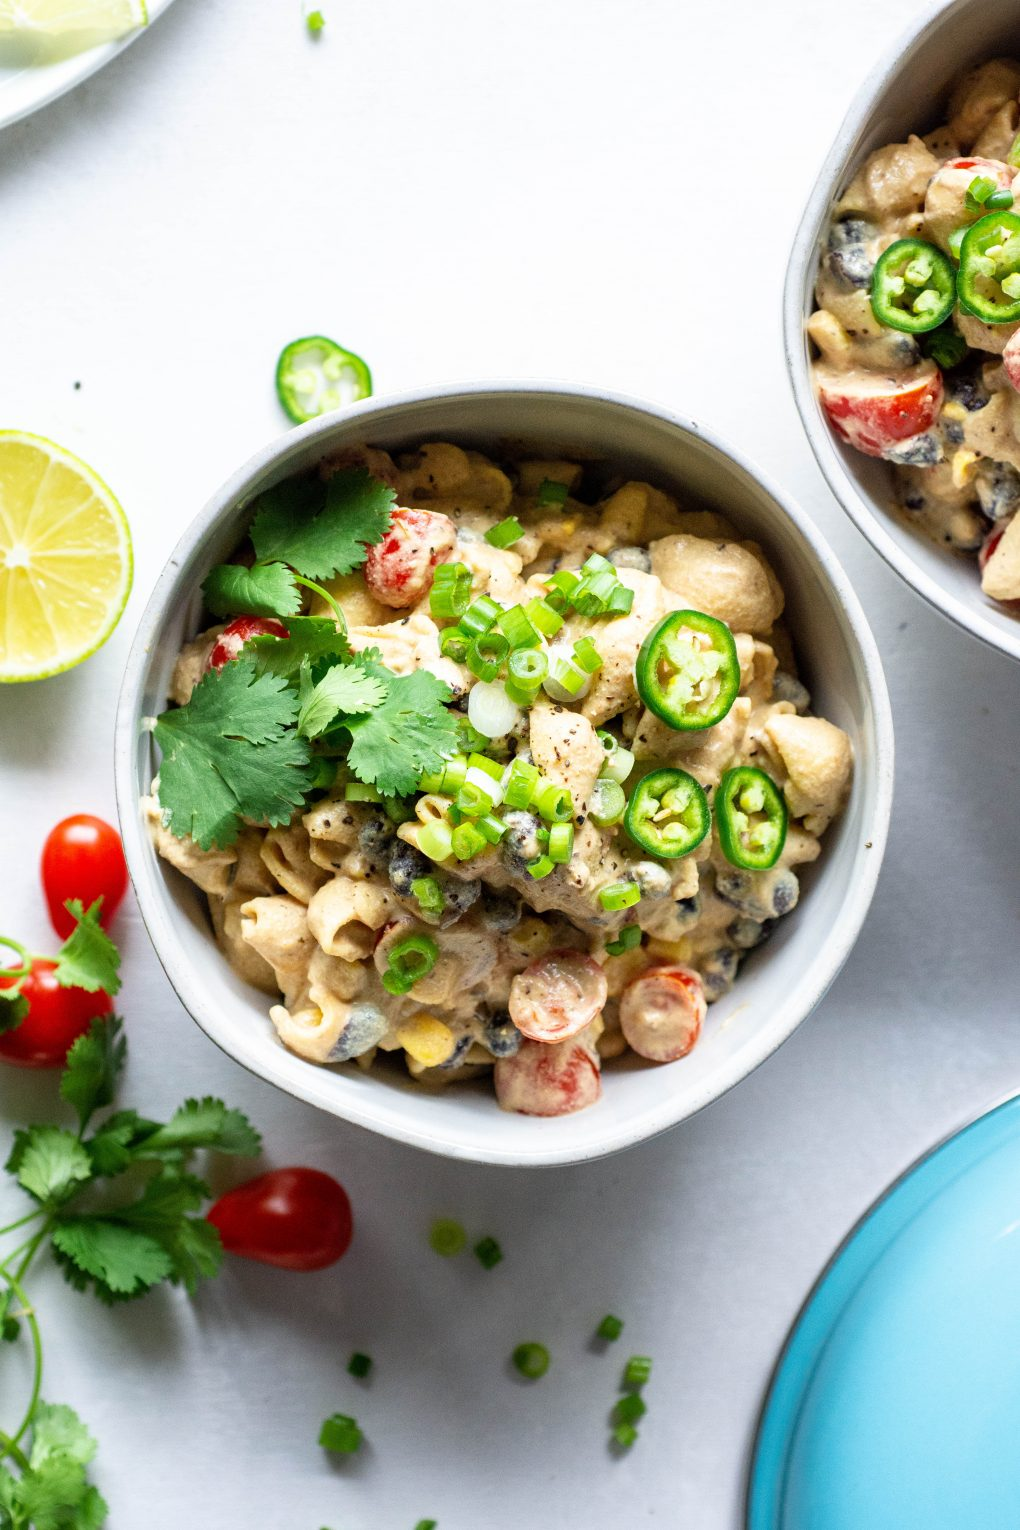 A close up shot of a bowl of vegan mexican mac and cheese topped with green onions, jalapeno, and fresh cilantro. On a light background surrounded by sliced lime, cherry tomatoes, and fresh herb.